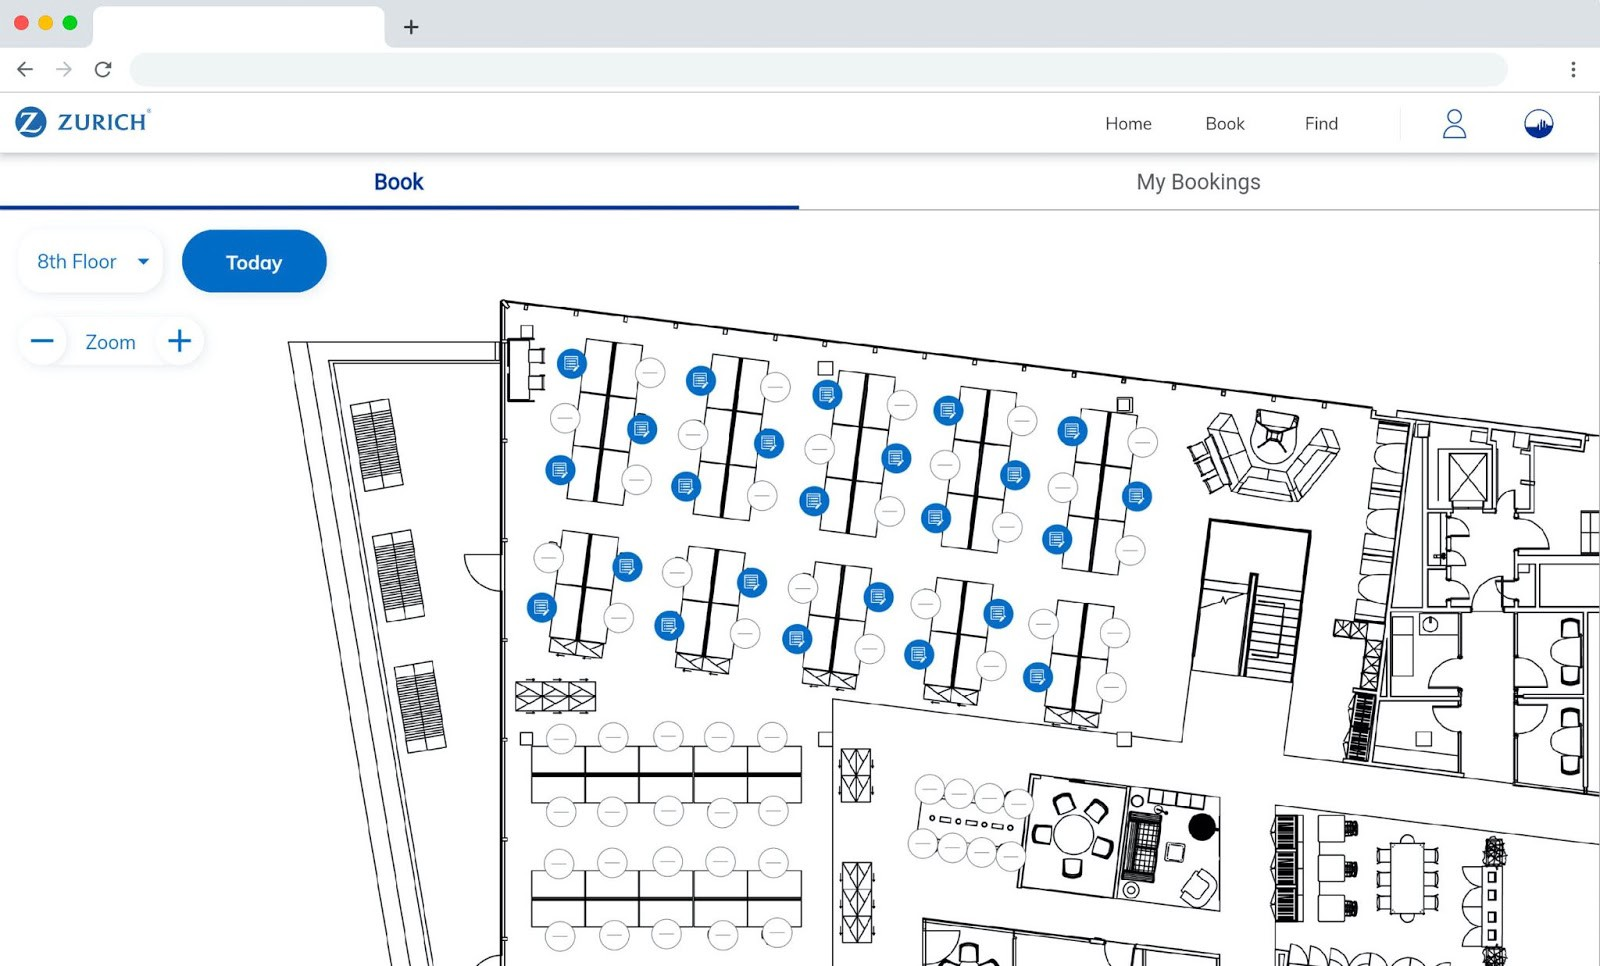 Property management solution for Zurich Insurance, built by Spica Technologies, is a great example of the business apps Flutter's web support can enable on desktop browsers.